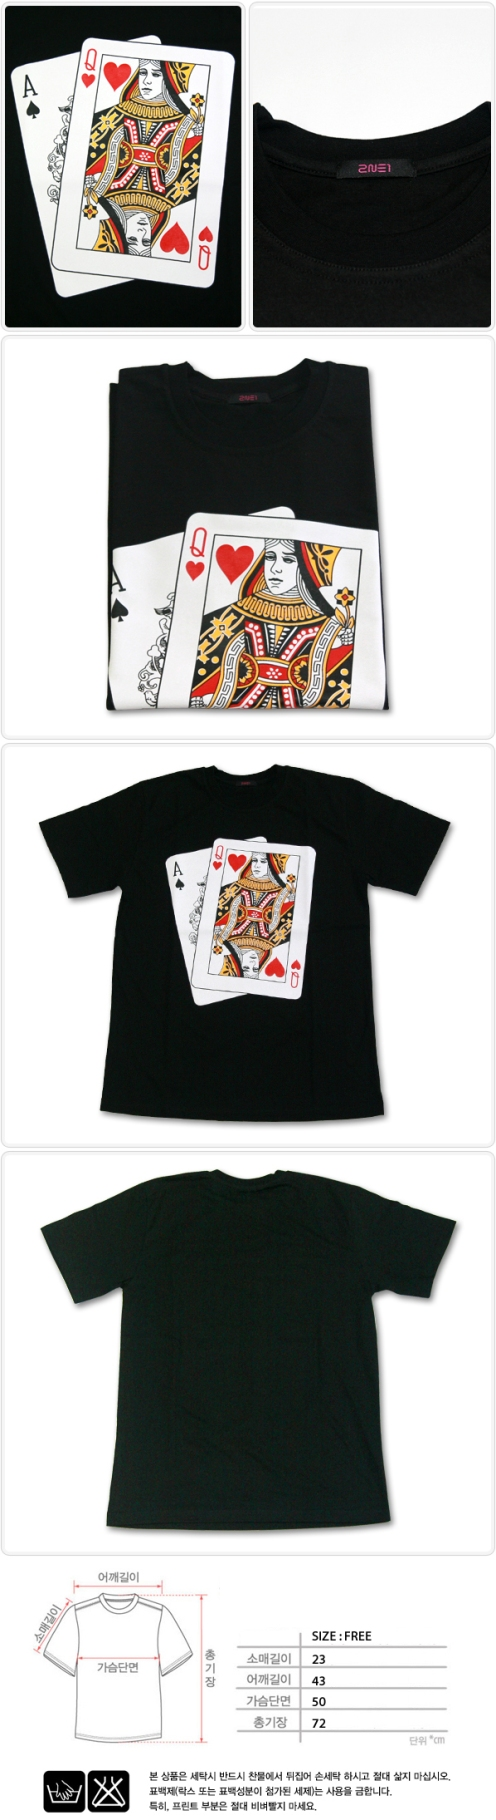 2NE1 21 Blackjack Shirt